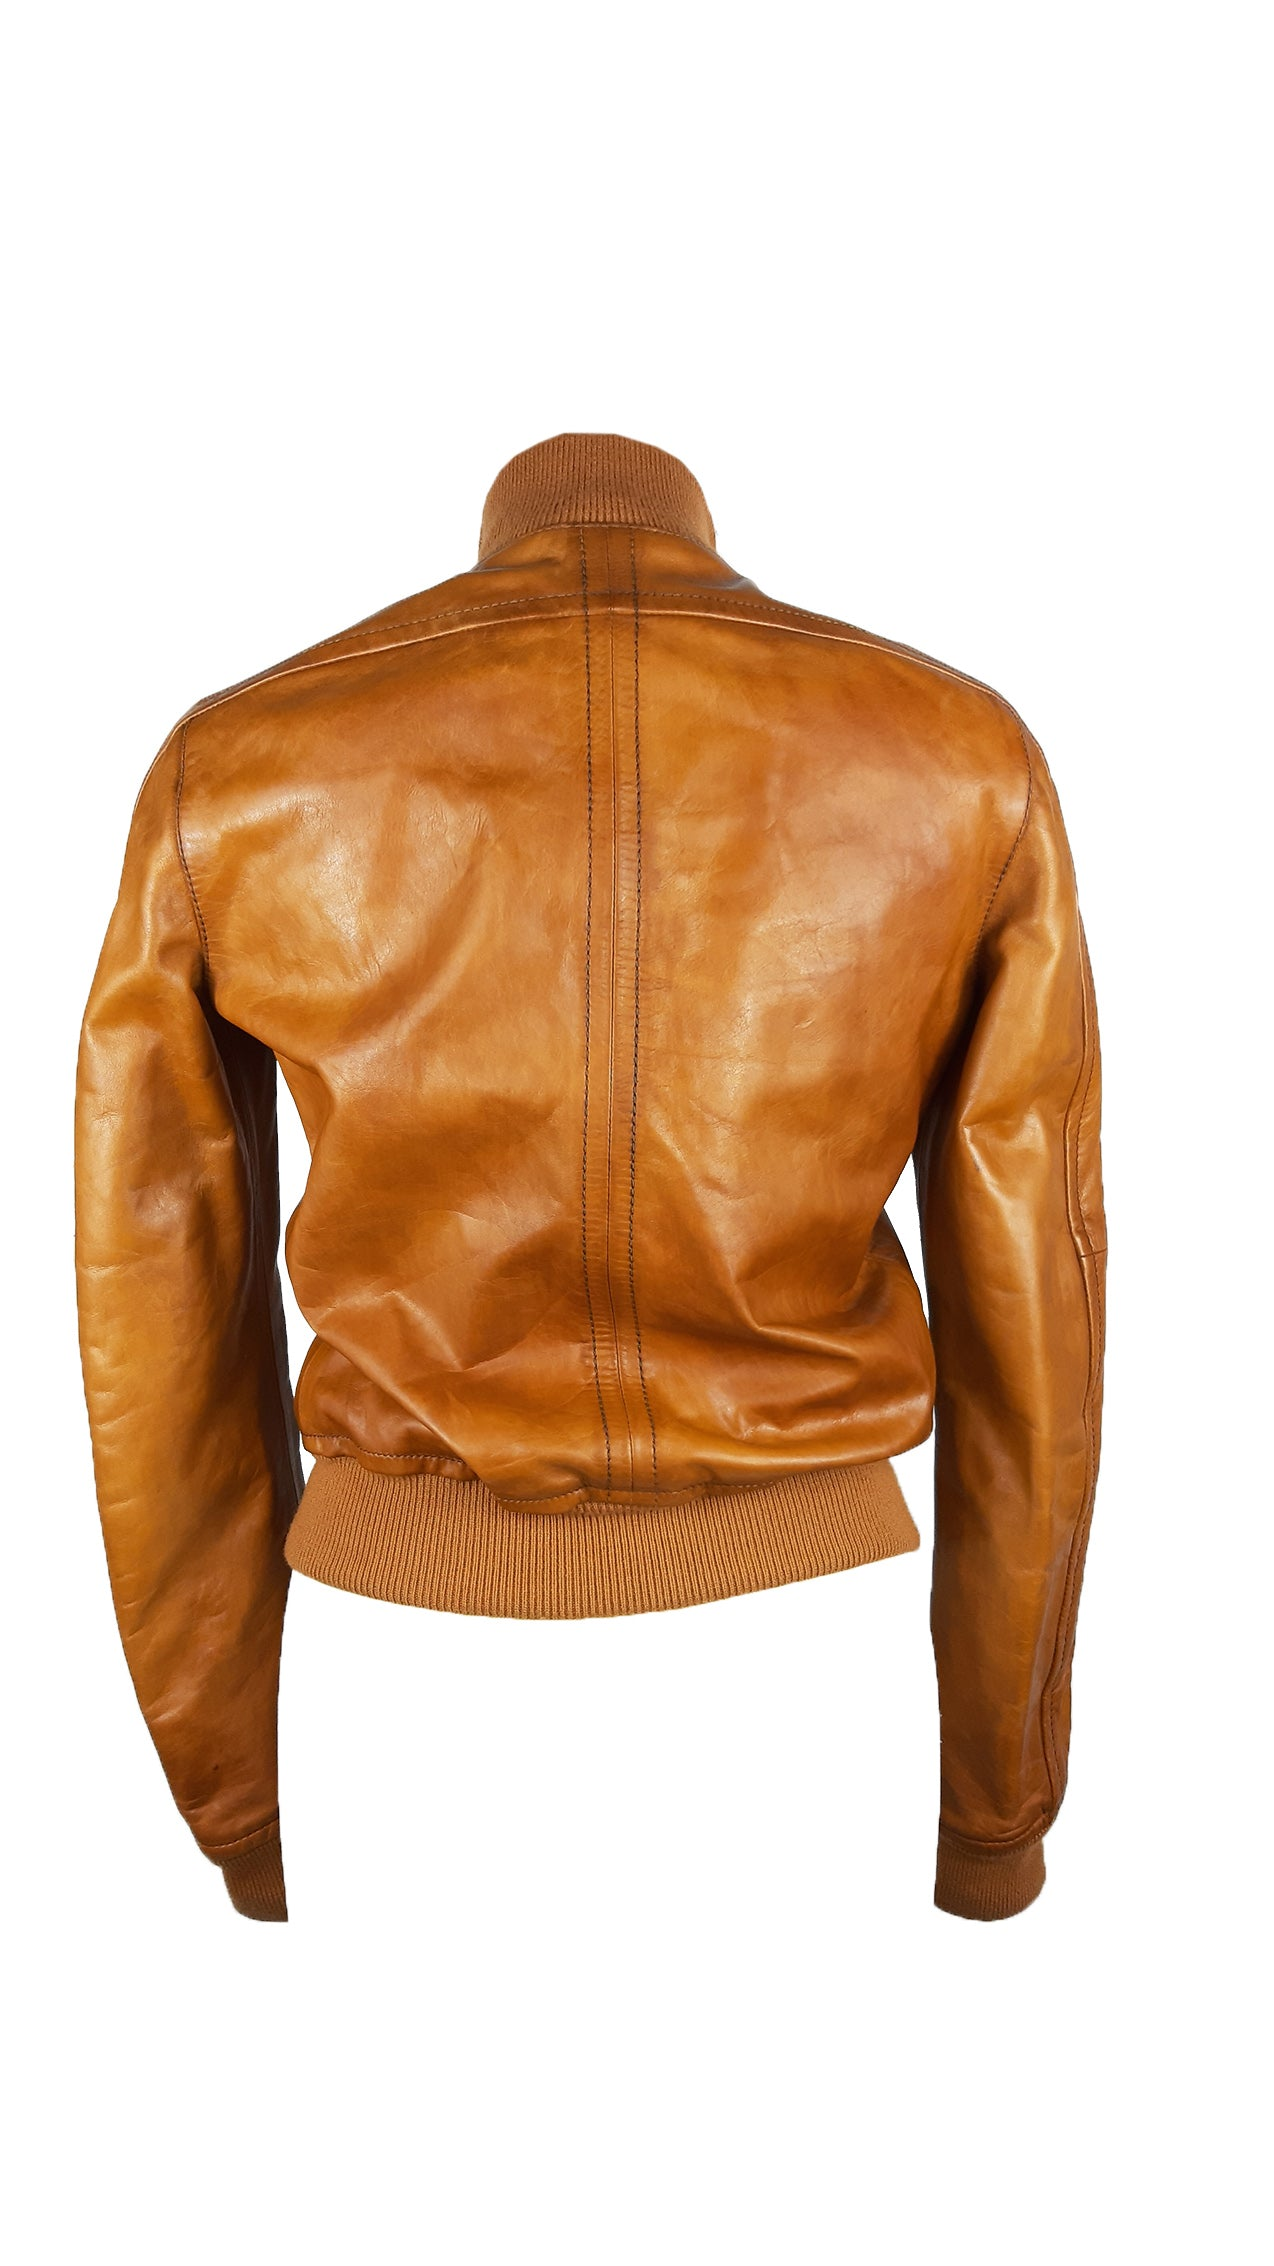 Dsquared2 Camel Leather Biker Jacket  with Golden Details and 2 Front Pockets Size 38 (EU) 42 (IT)